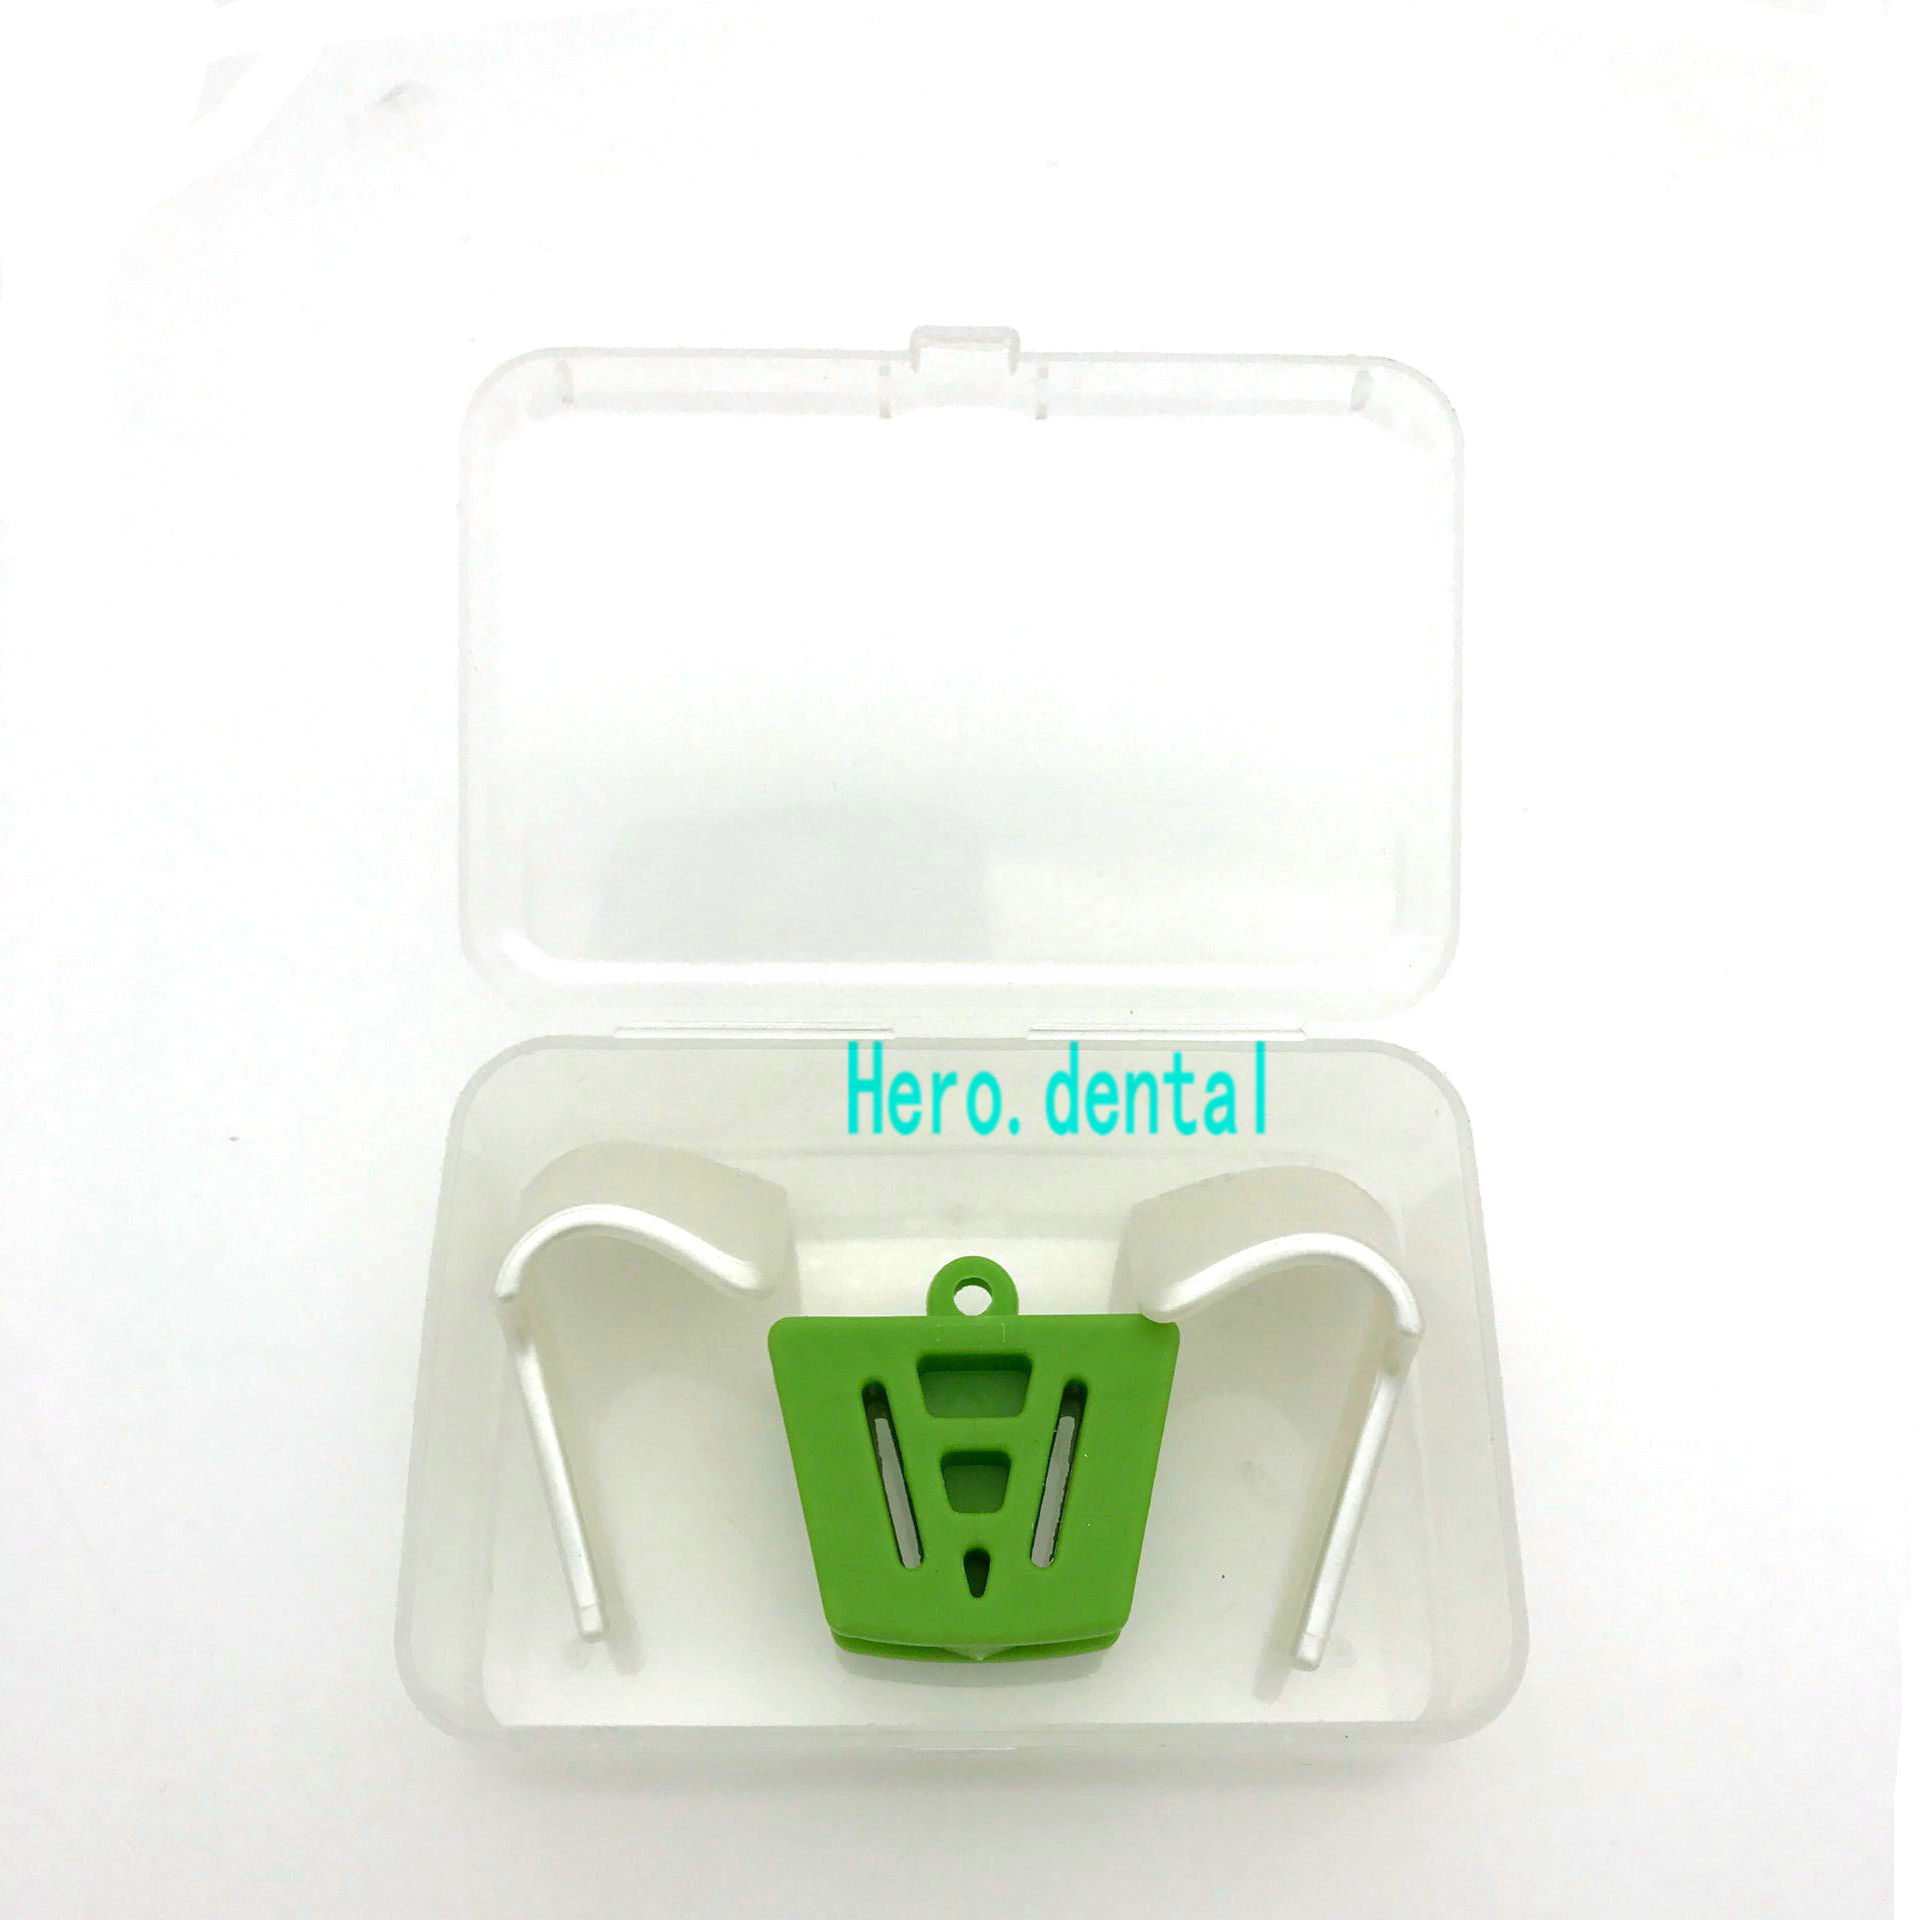 Dental Silicone Mouth Prop Latex Bite Block With Tongue Guard